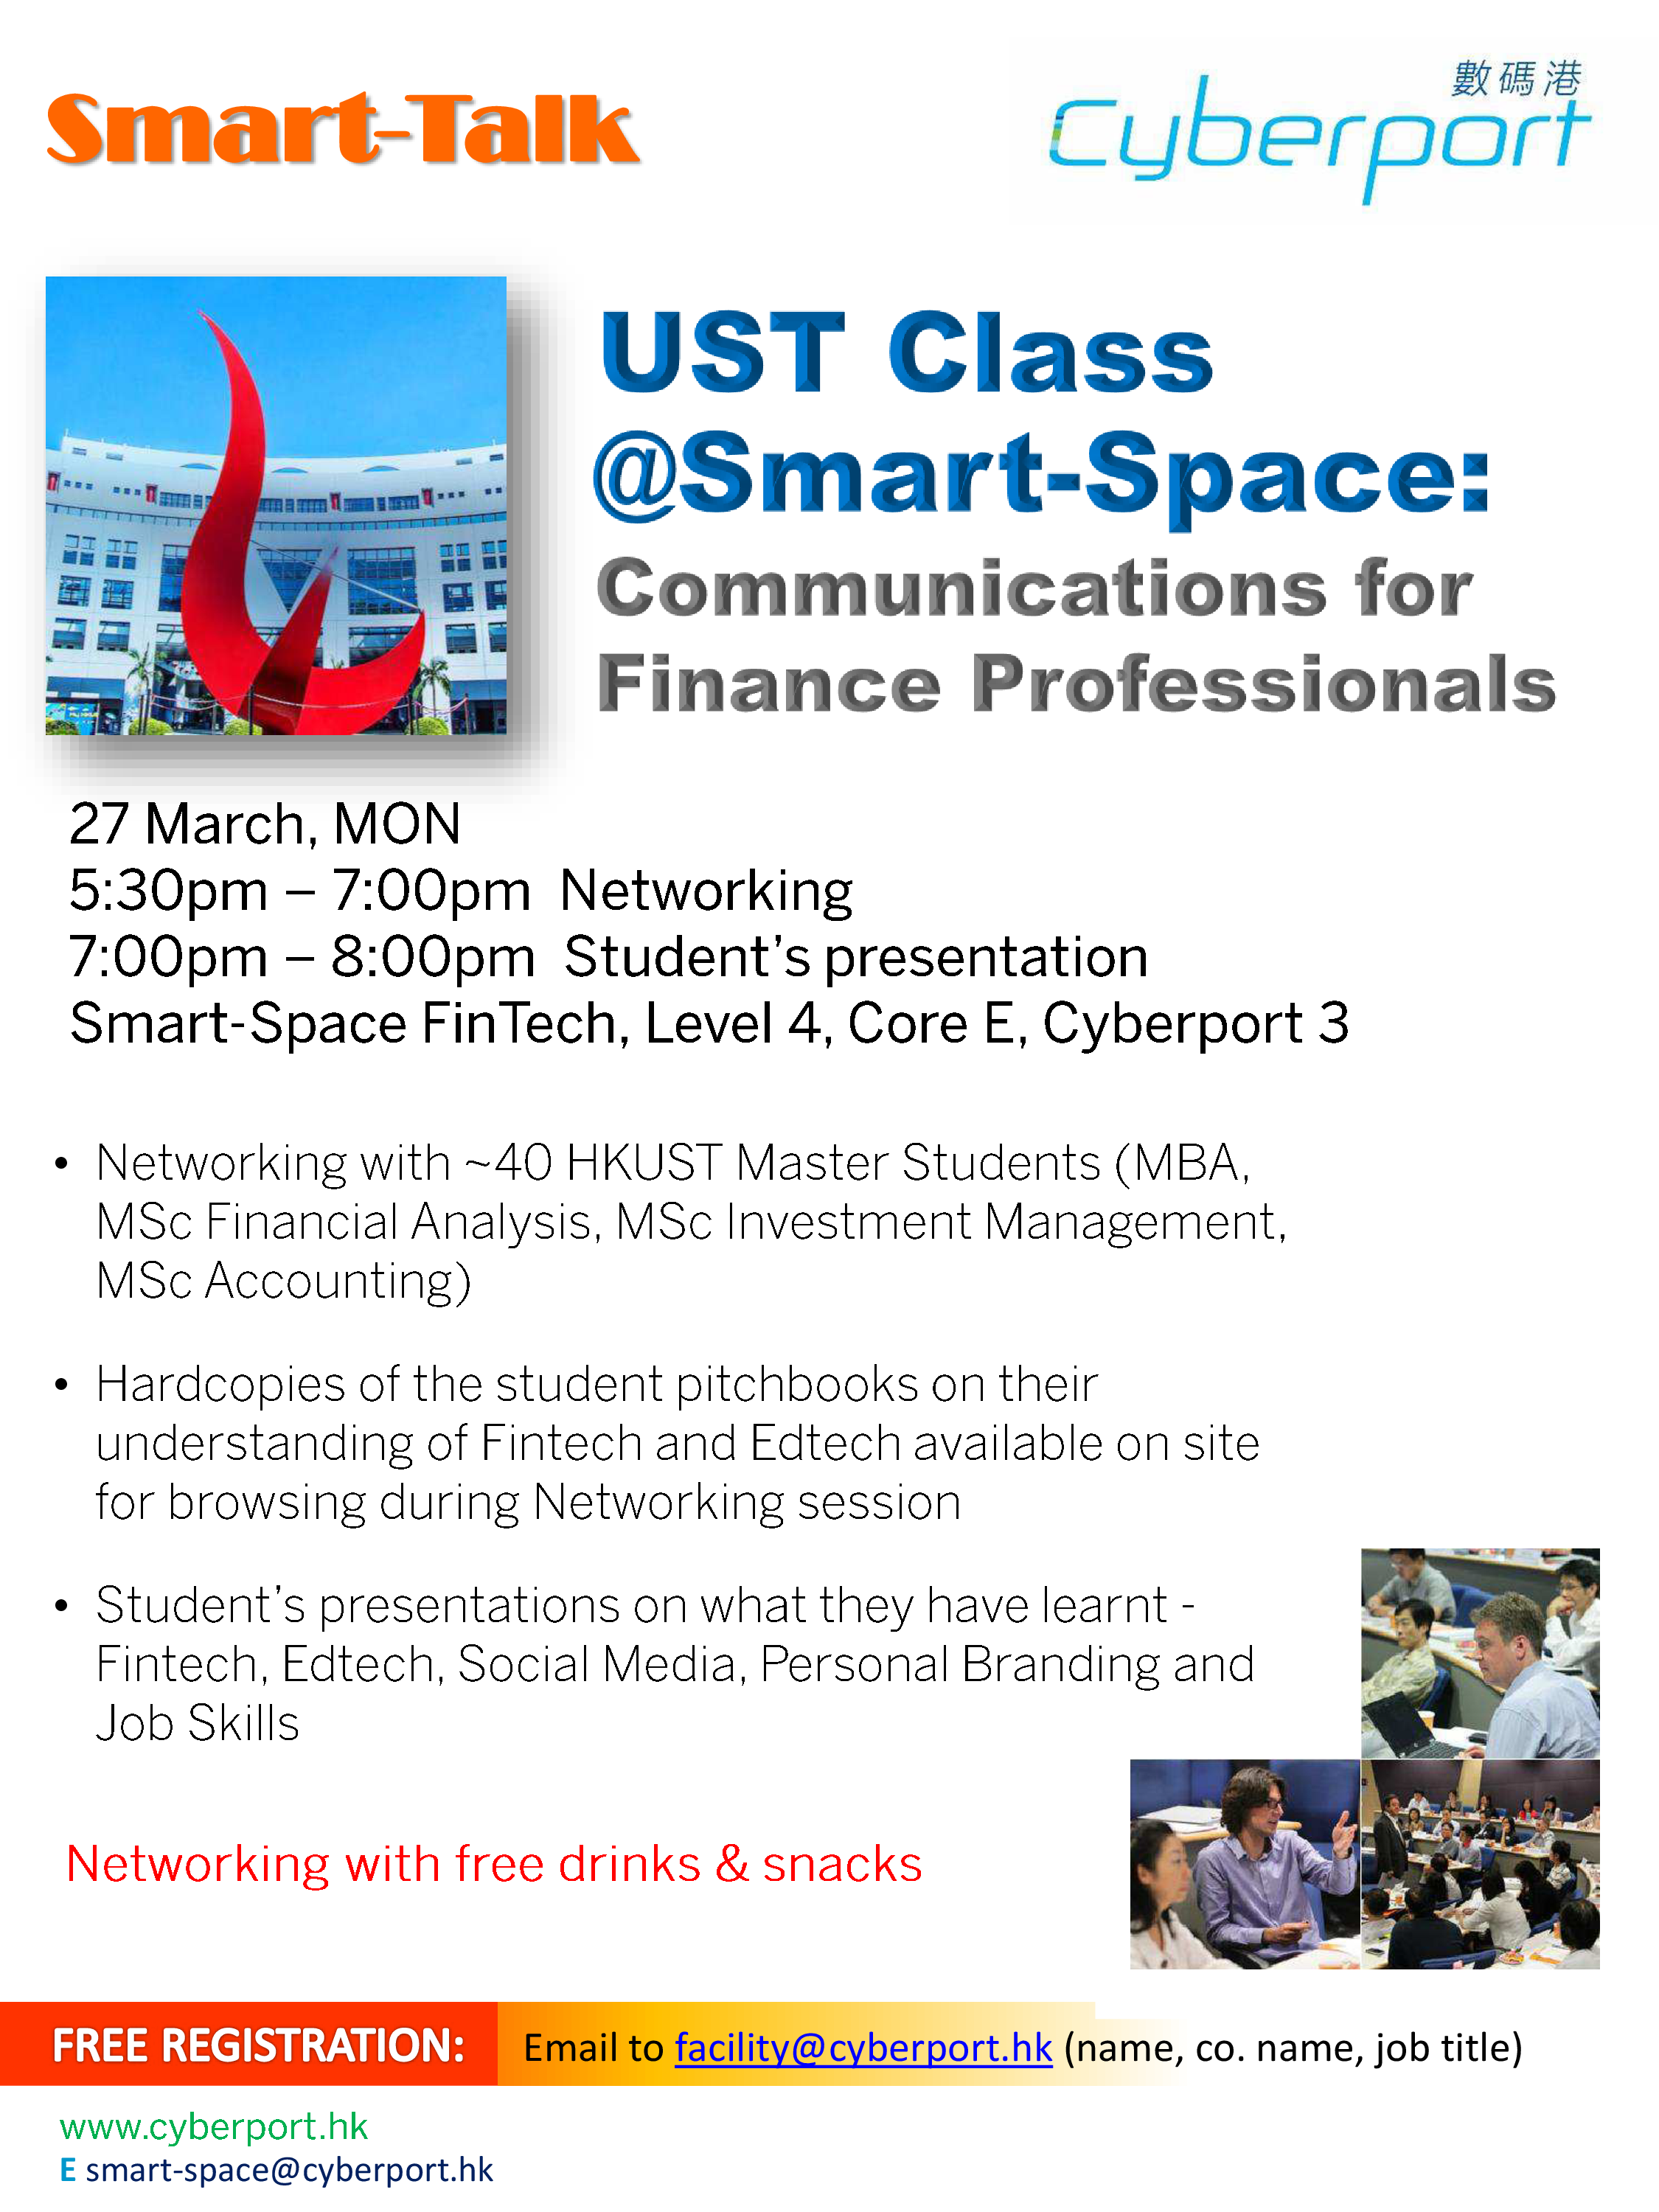 Smart-Talk & Happy Hour: UST Class@Smart-Space - Communications for Finance Professionals